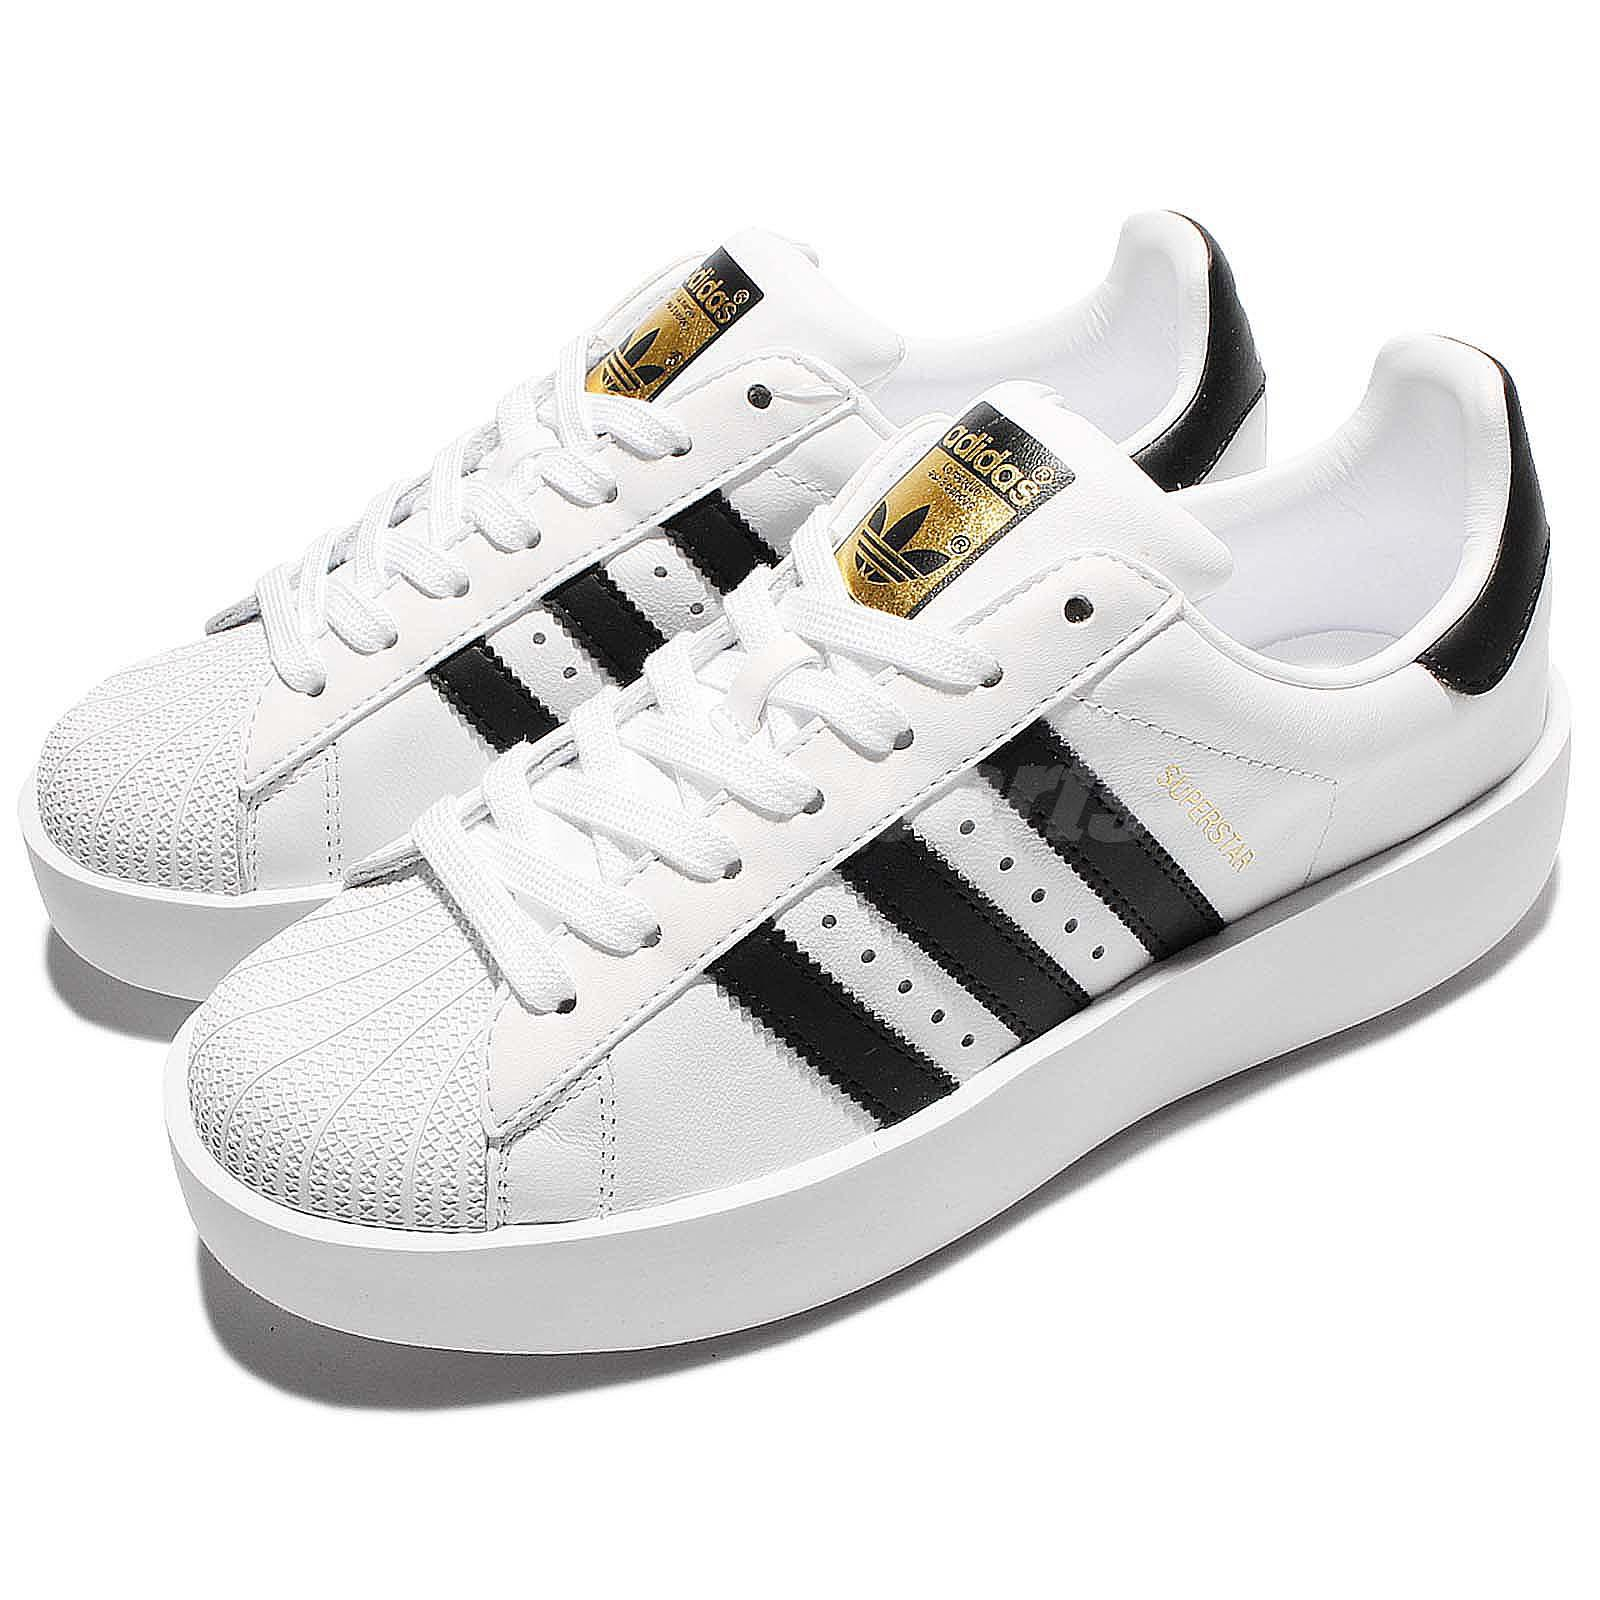 adidas originals superstar bold platform w white gold women classic shoes ba7666 ebay. Black Bedroom Furniture Sets. Home Design Ideas